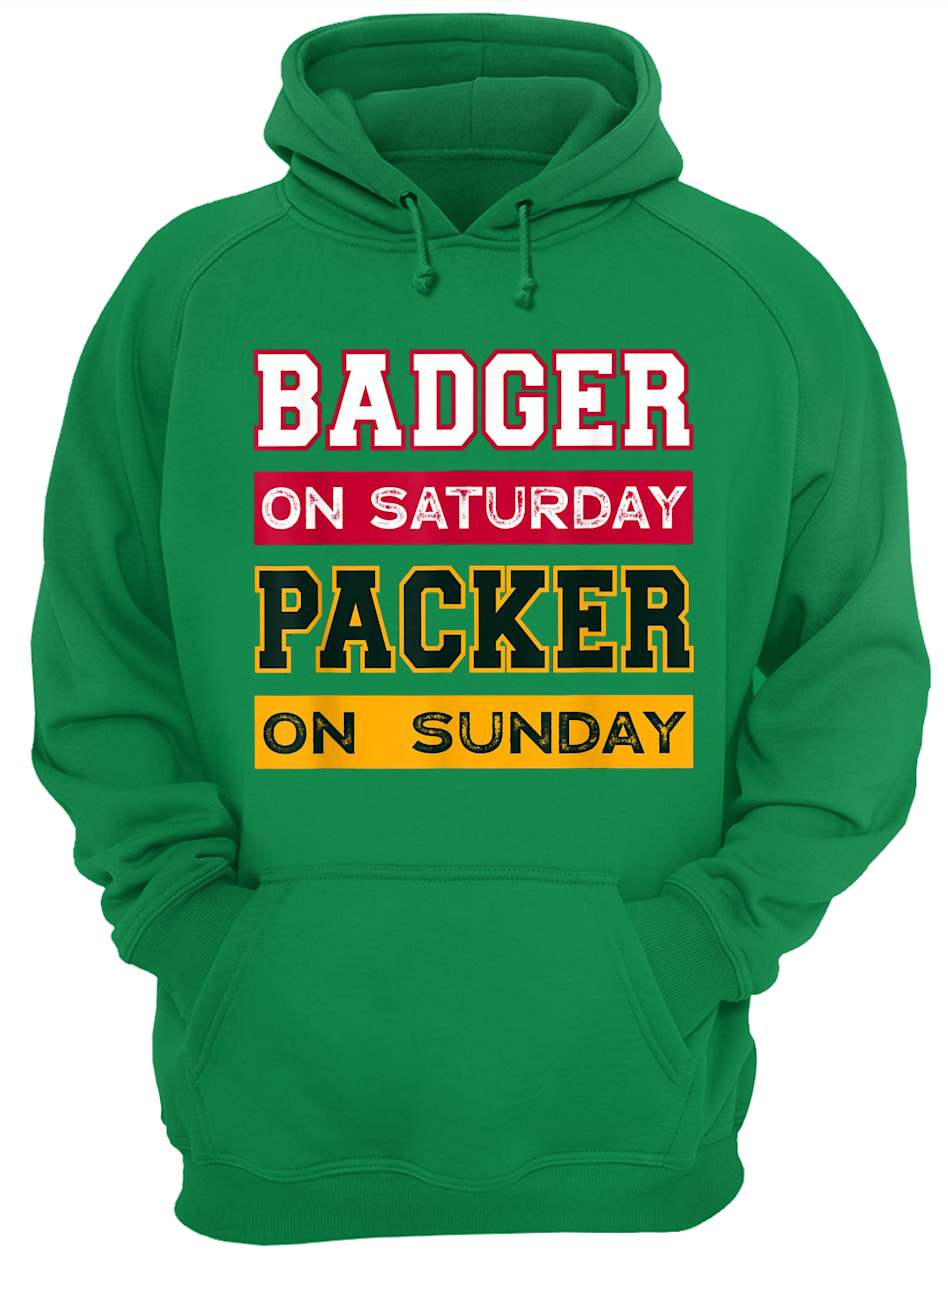 Badger on saturday packer on sunday green bay packers hoodie